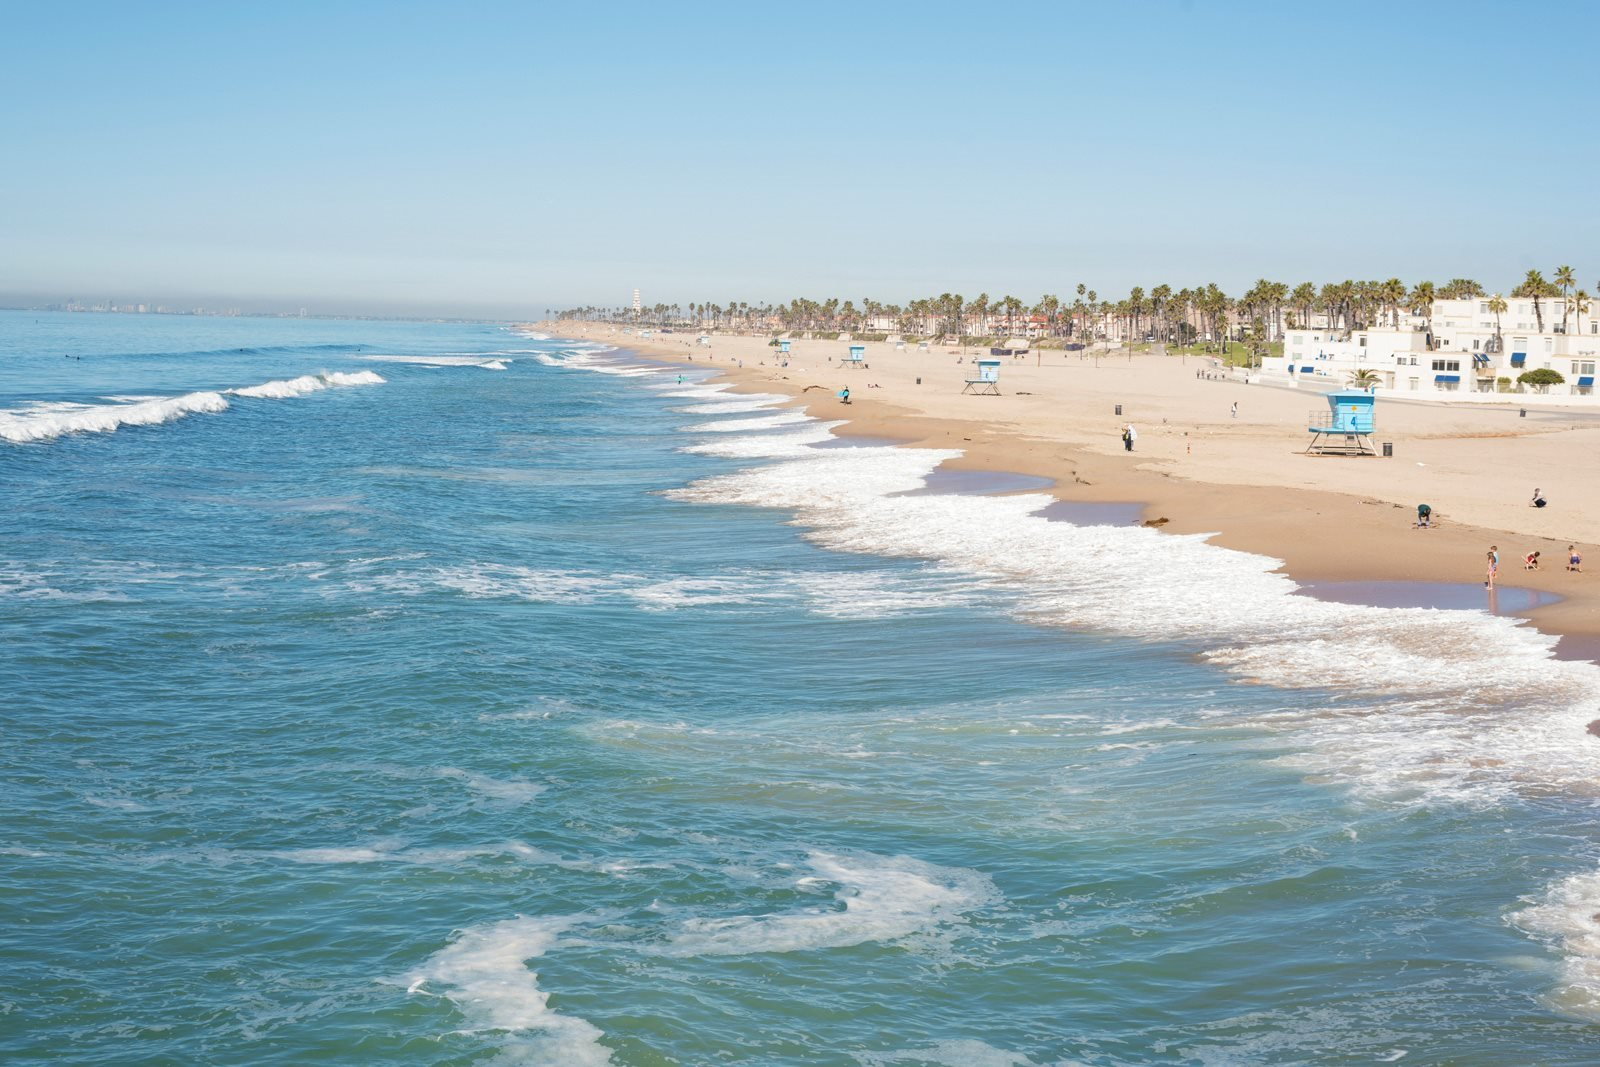 20 Miles from Top California Beaches at Malden Station by Windsor, Fullerton, California